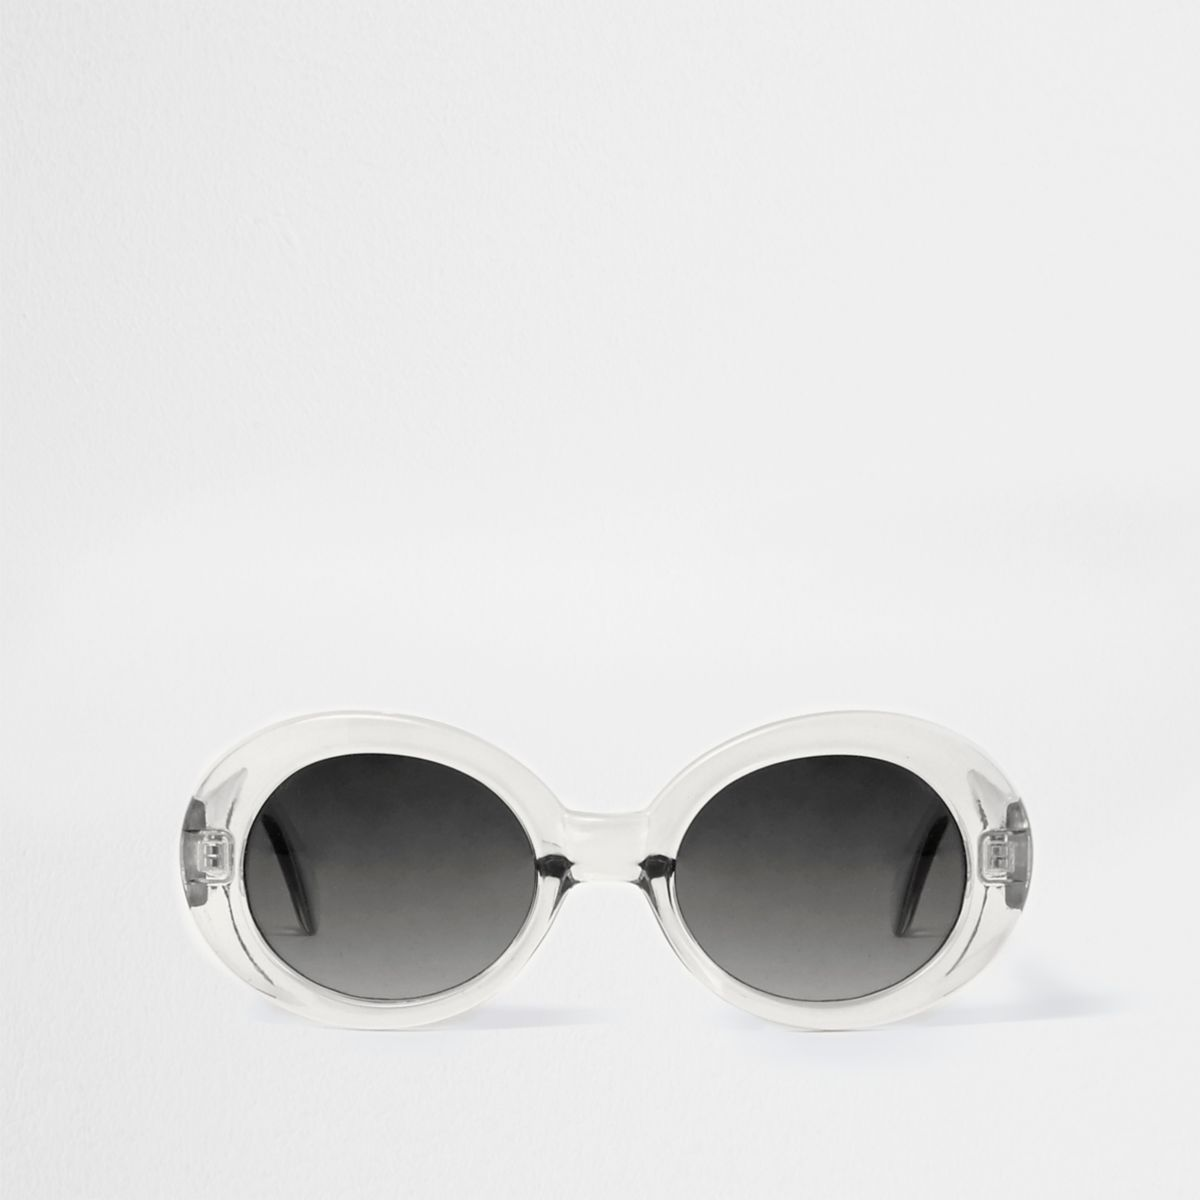 Light grey clear oval smoke lens sunglasses